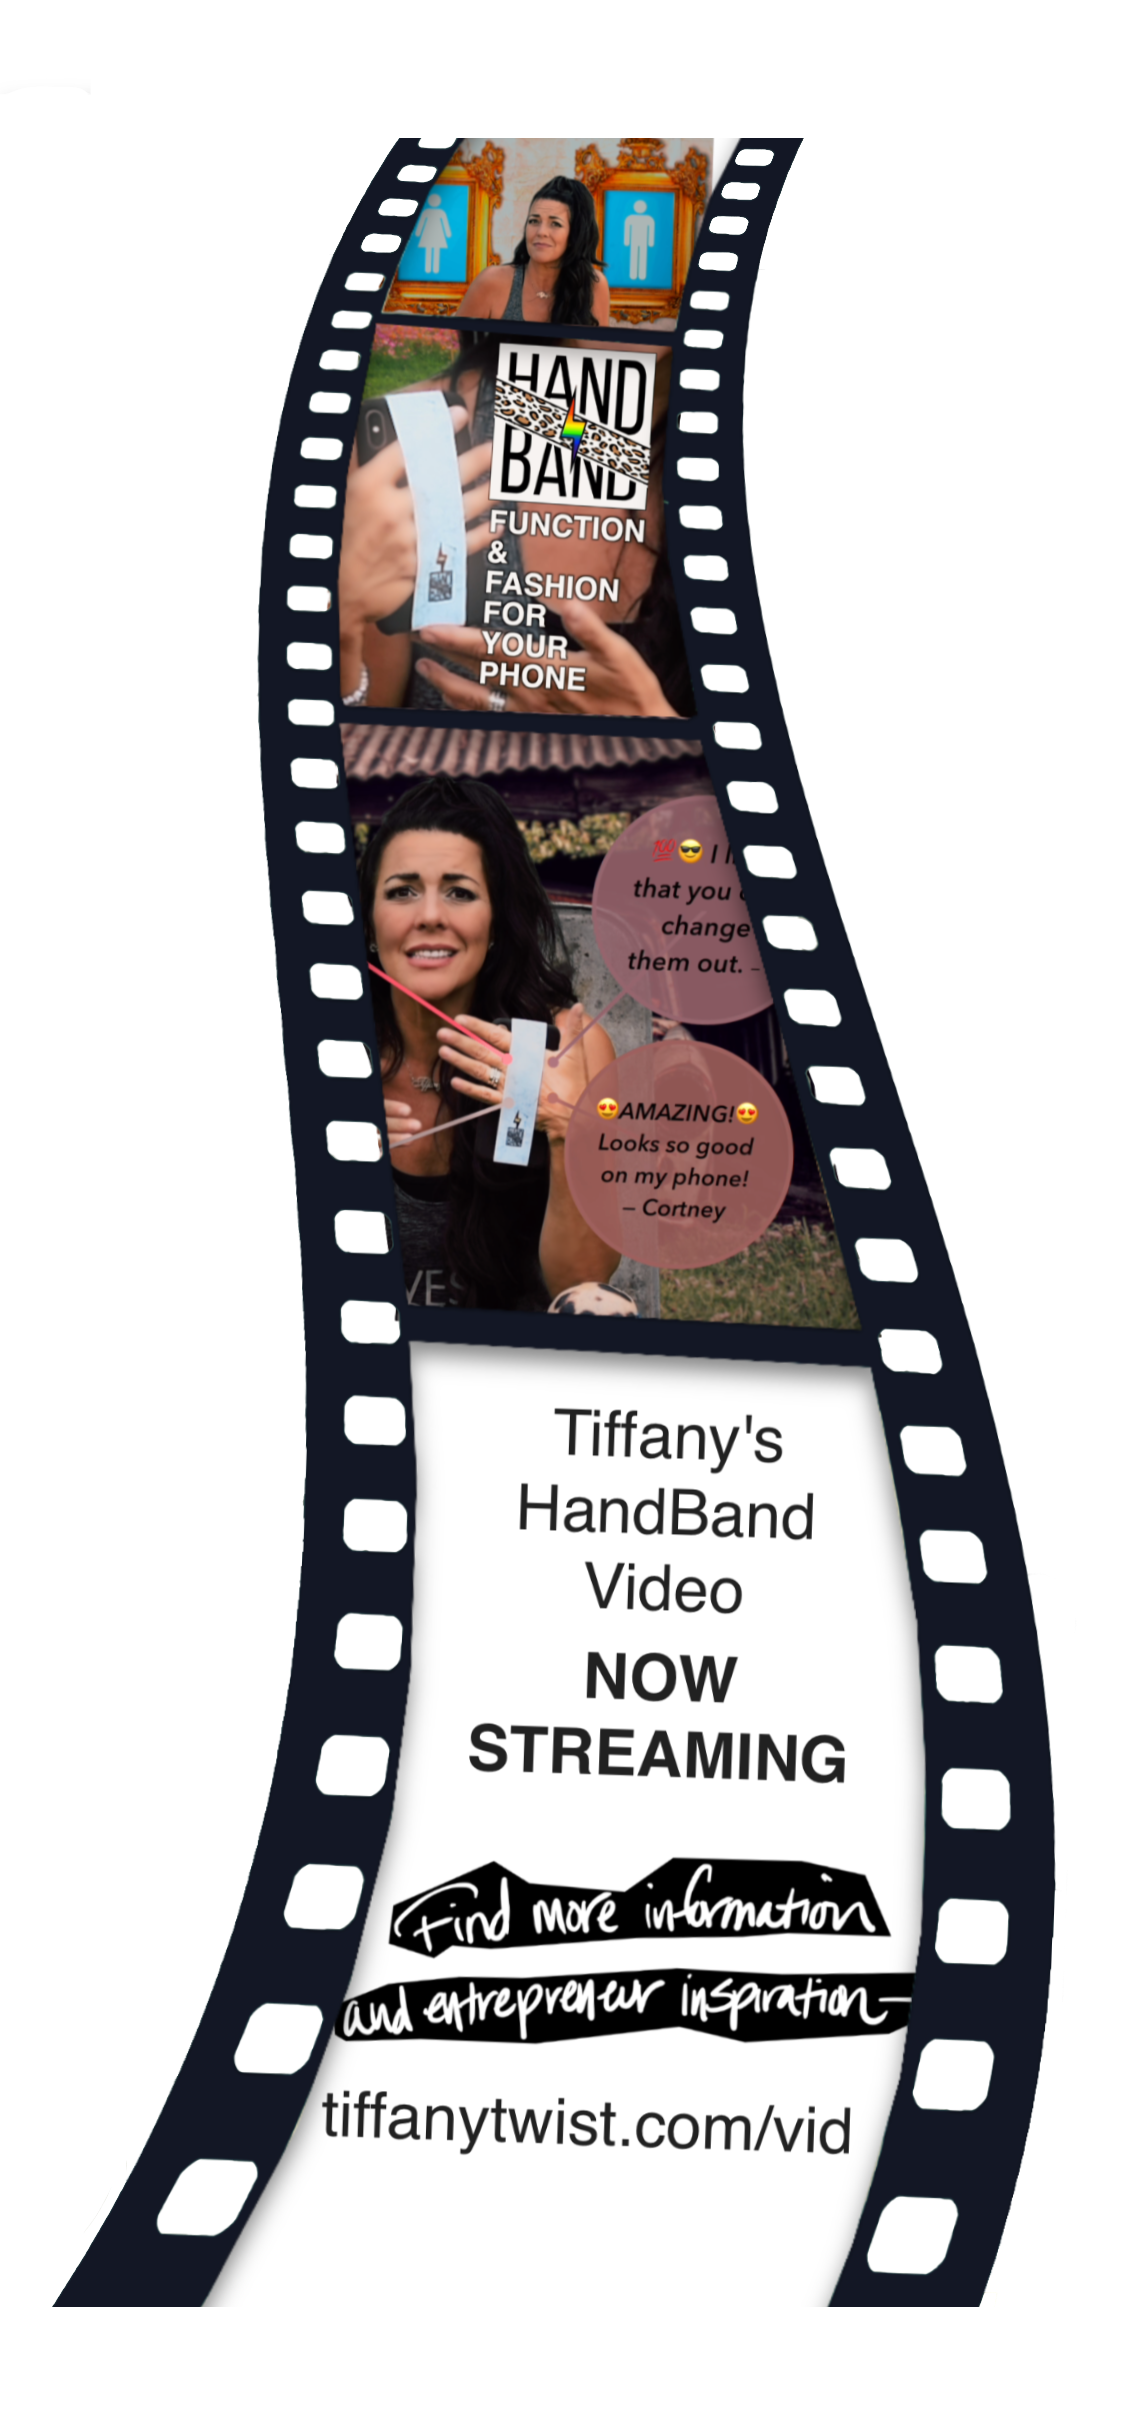 HandBand Video Tiffany Twist